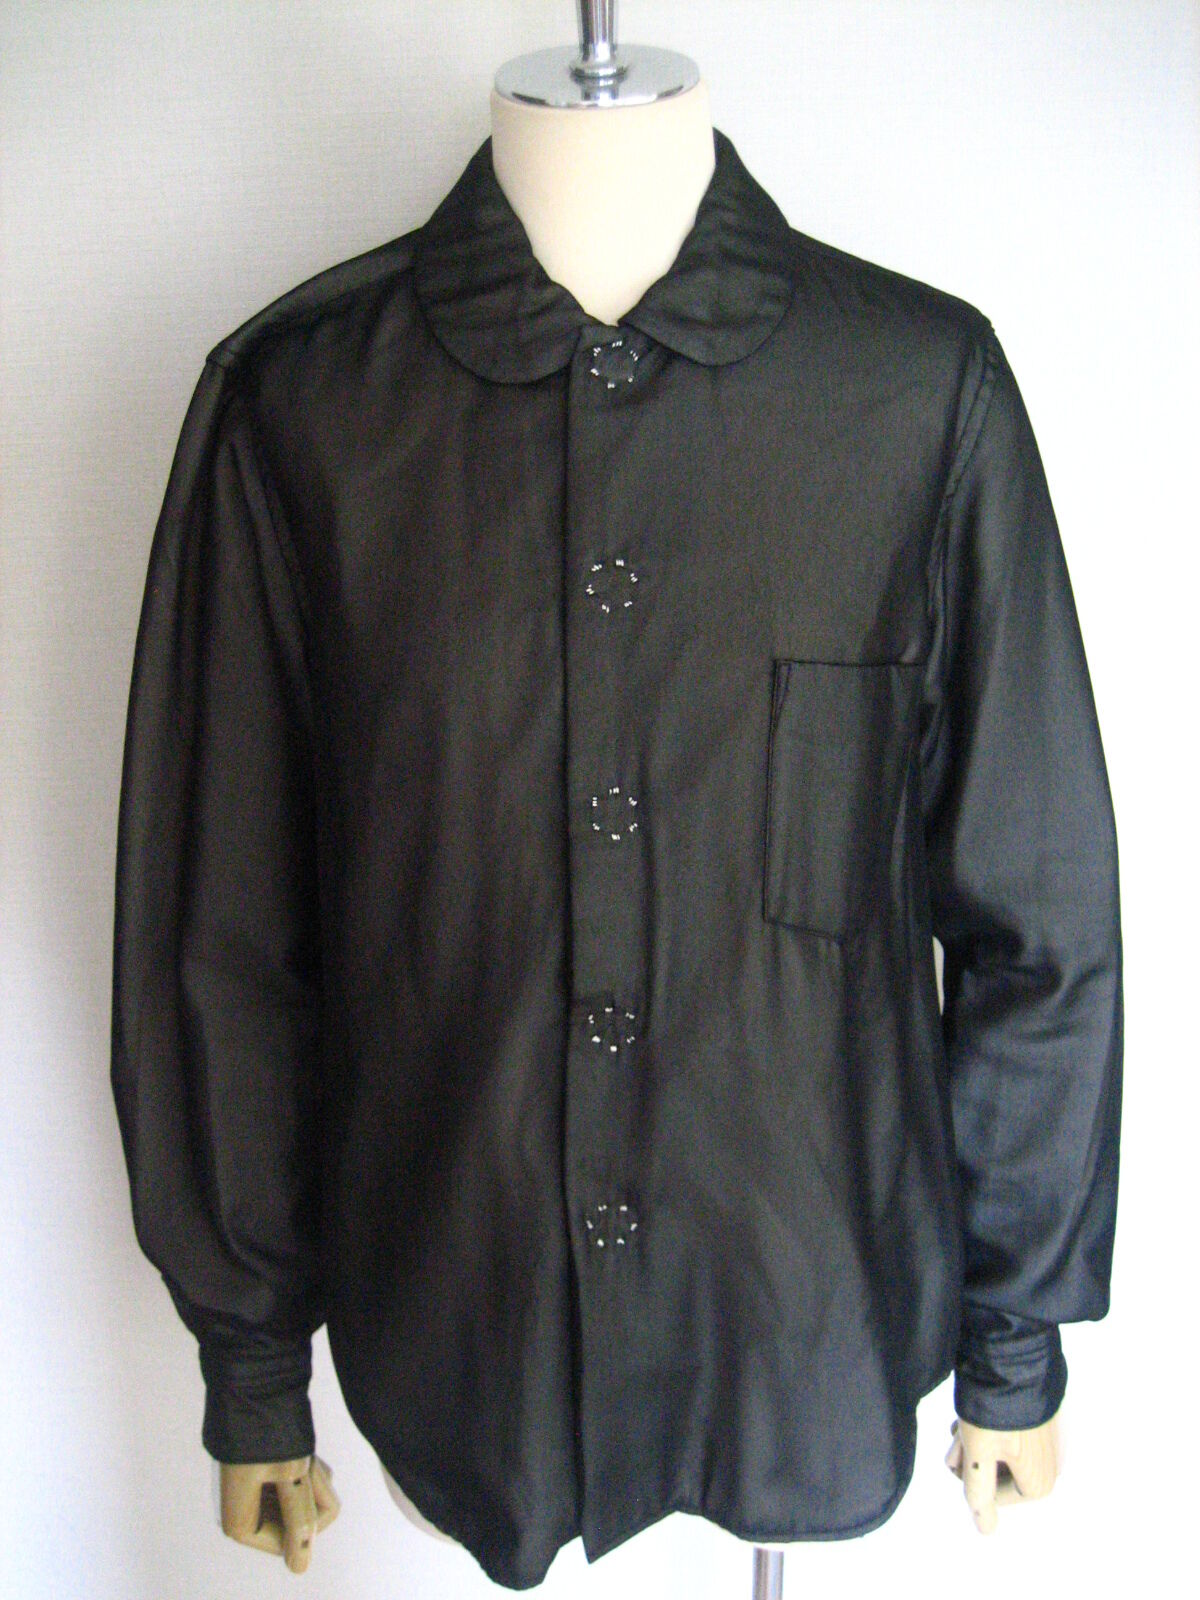 AD2010 Comme Des Garcons Long Sleeve schwarz See-through Blouse Jacket